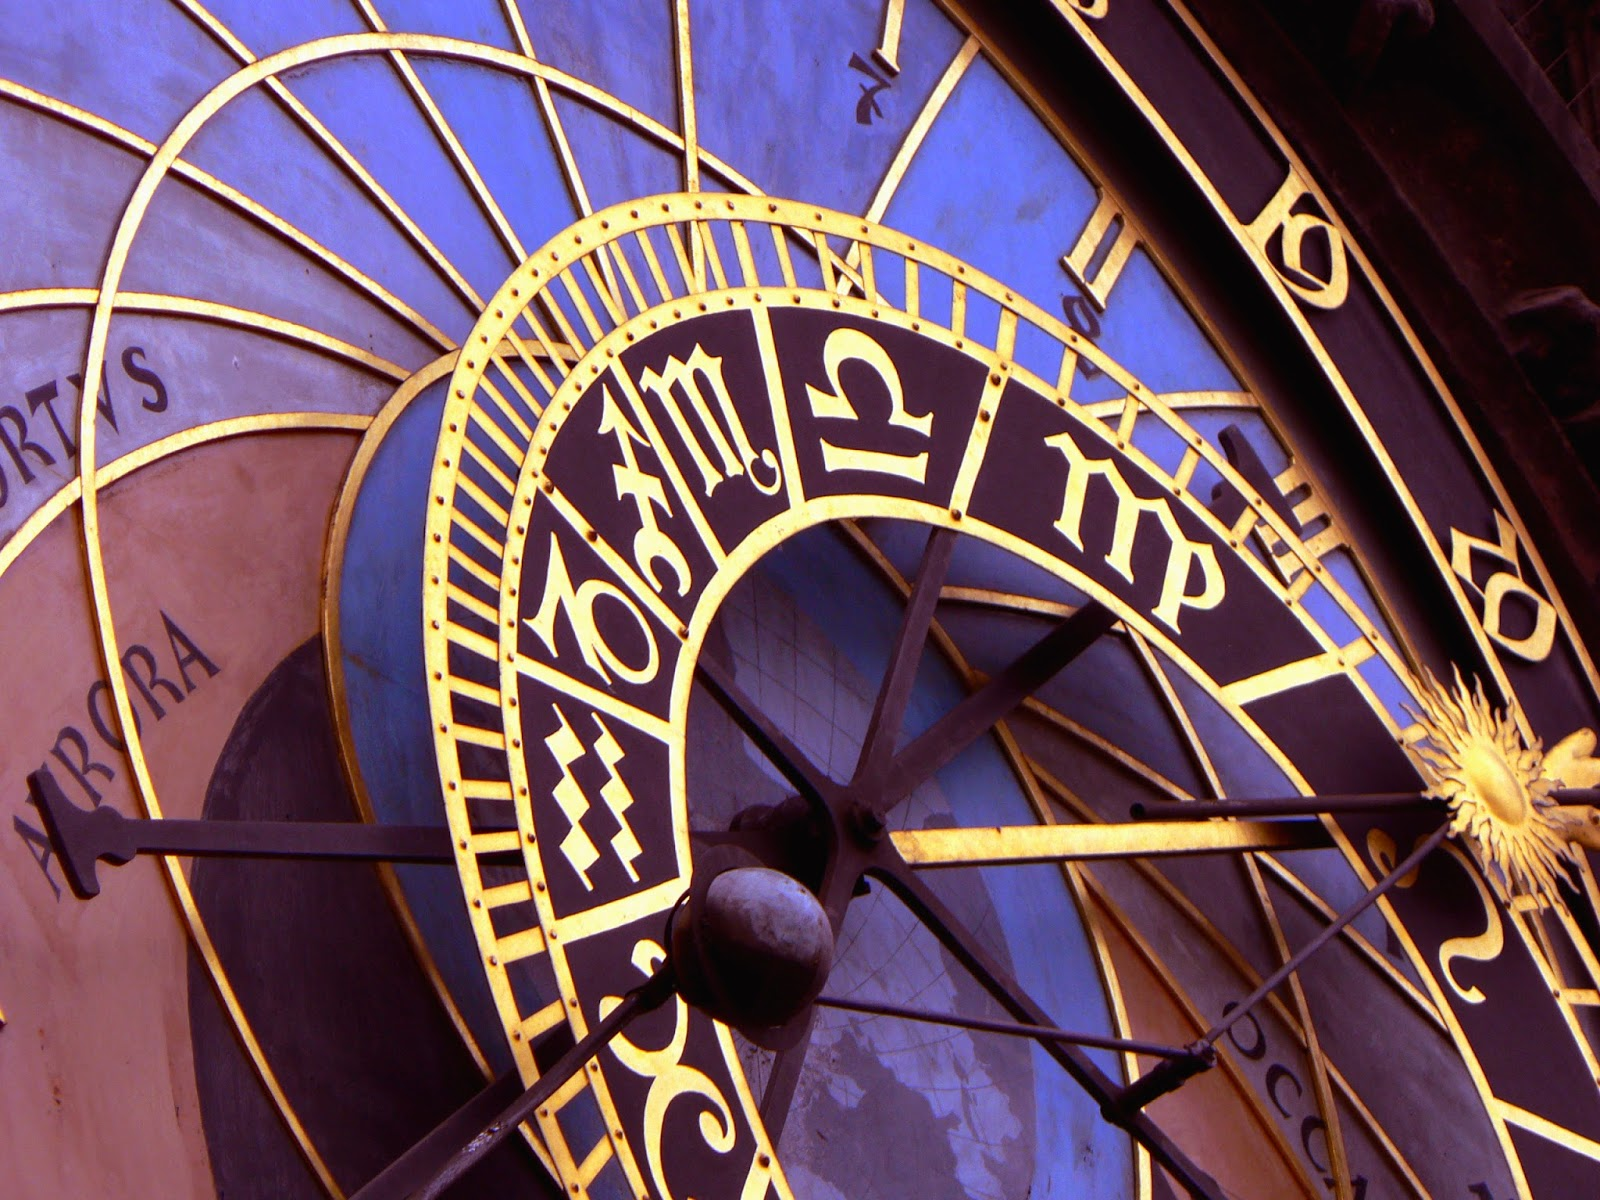 Astrological clock close-up